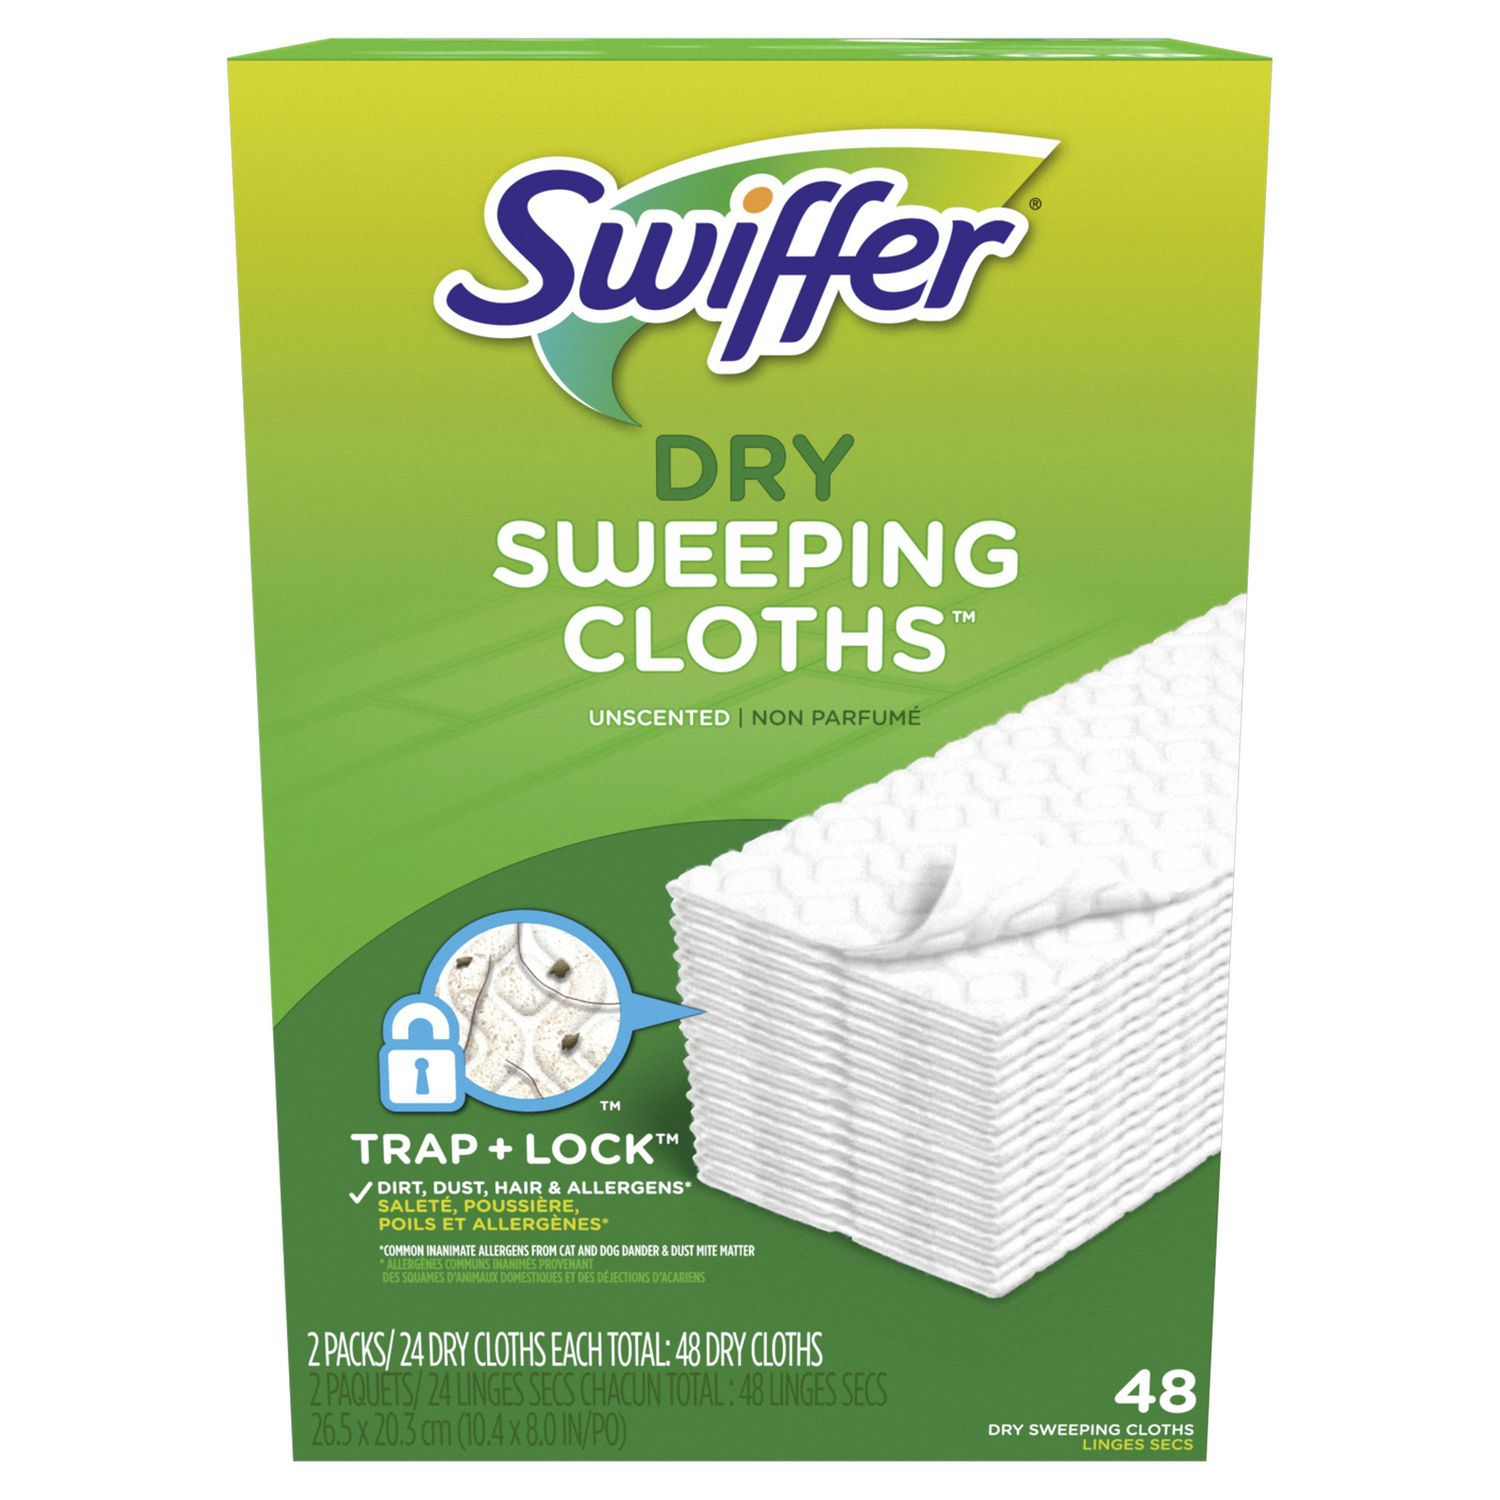 Floor cleaner mops for cleaning at walmart canada swiffer sweeper dry sweeping pad multi surface refills for dusters floor mop unscented dailygadgetfo Image collections